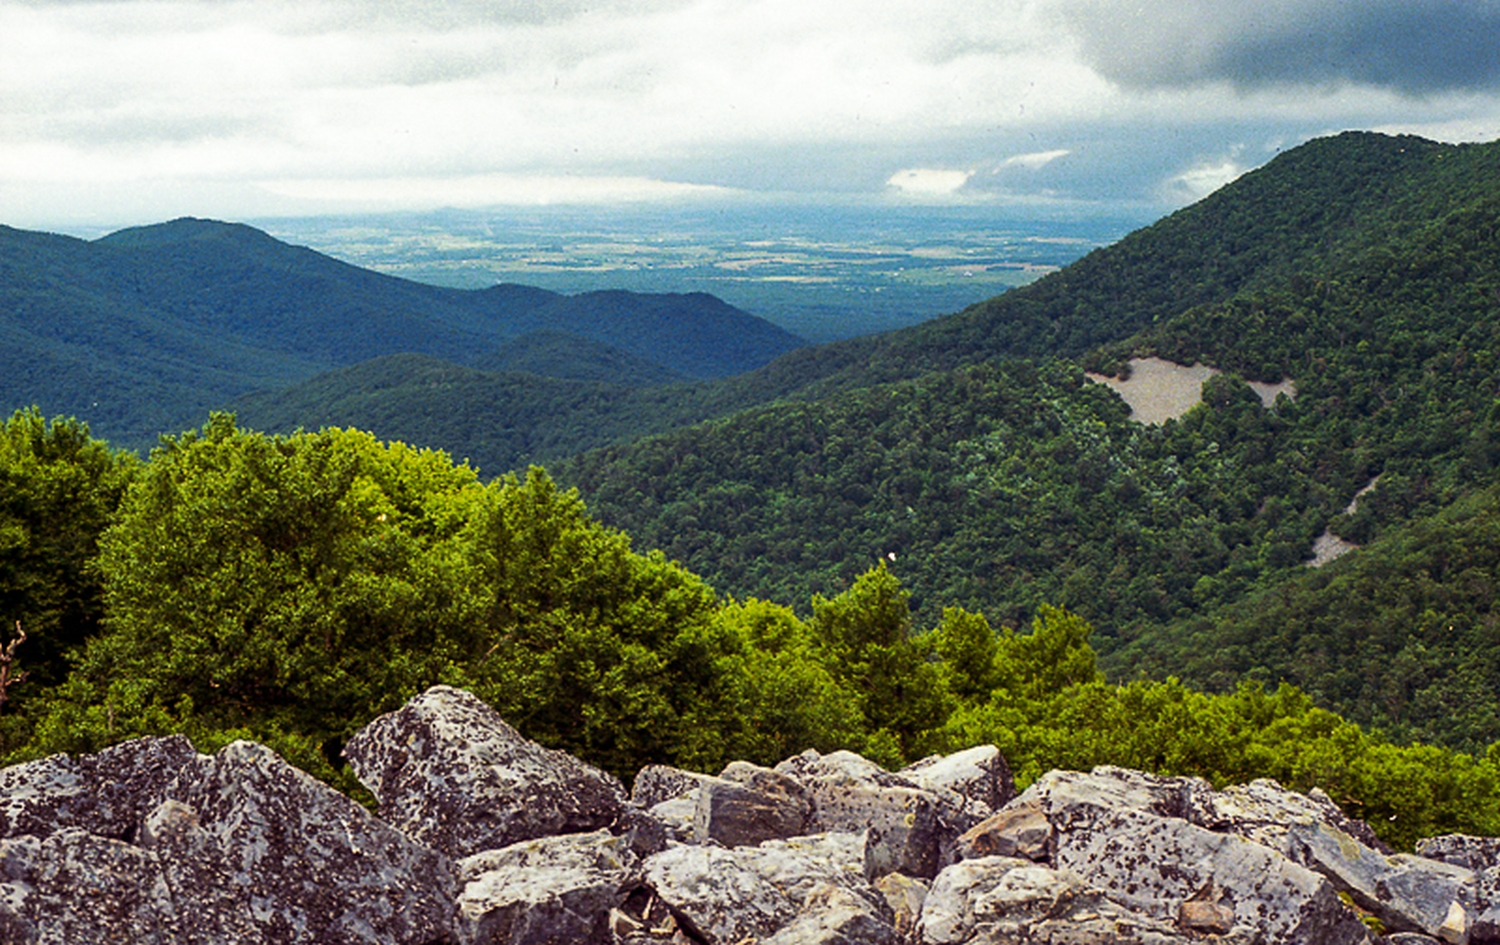 Black Rocks, Shenandoah National Park